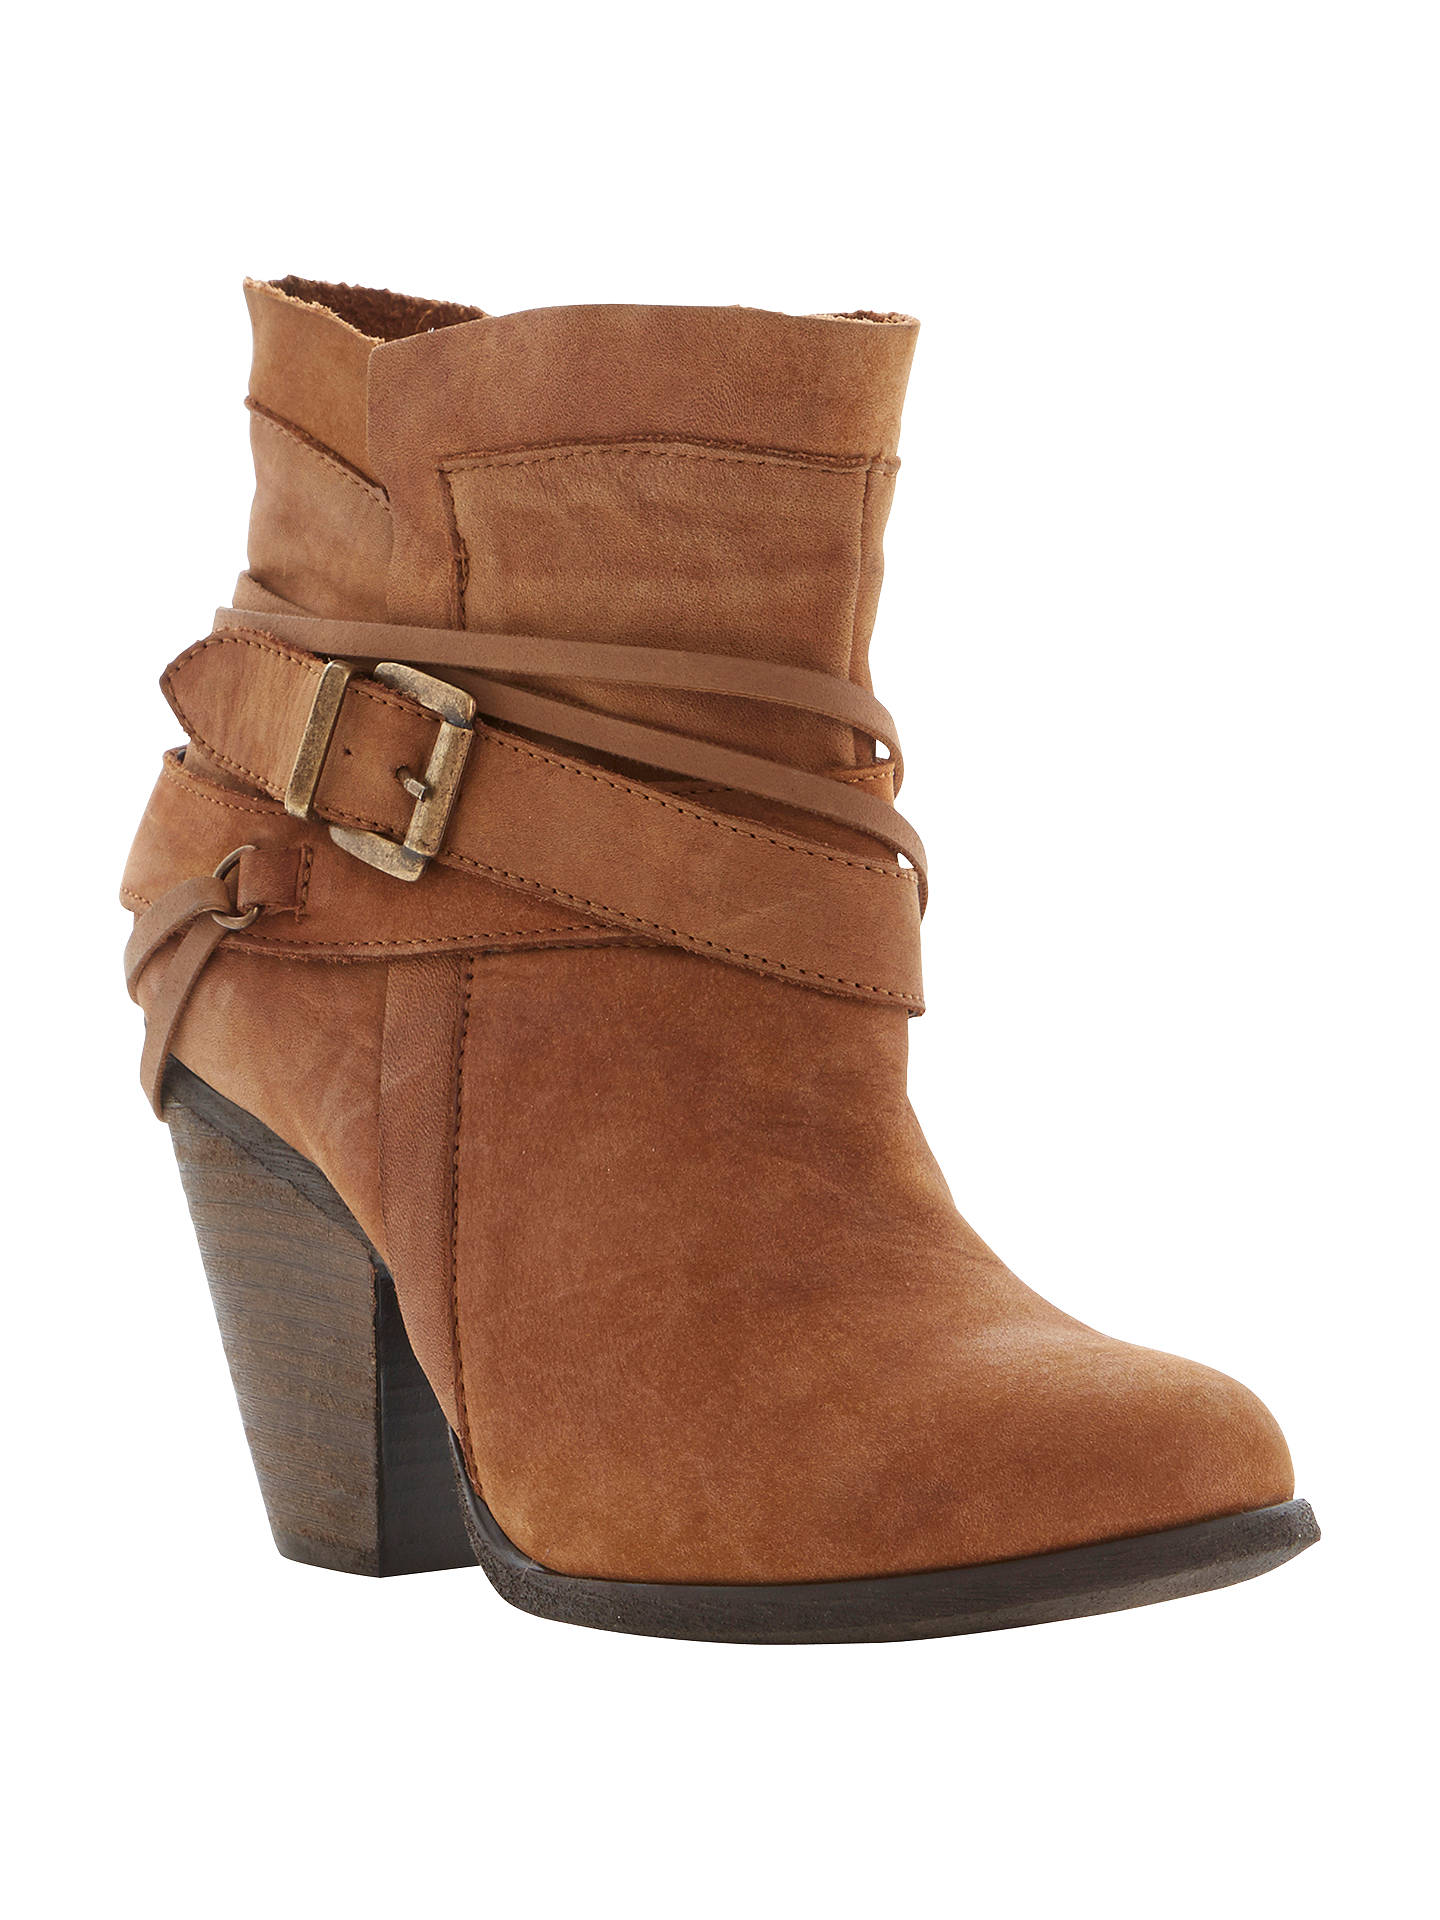 d7d826949fc Steve Madden Raffa Leather Buckle Trim Western Style Ankle Boots at ...